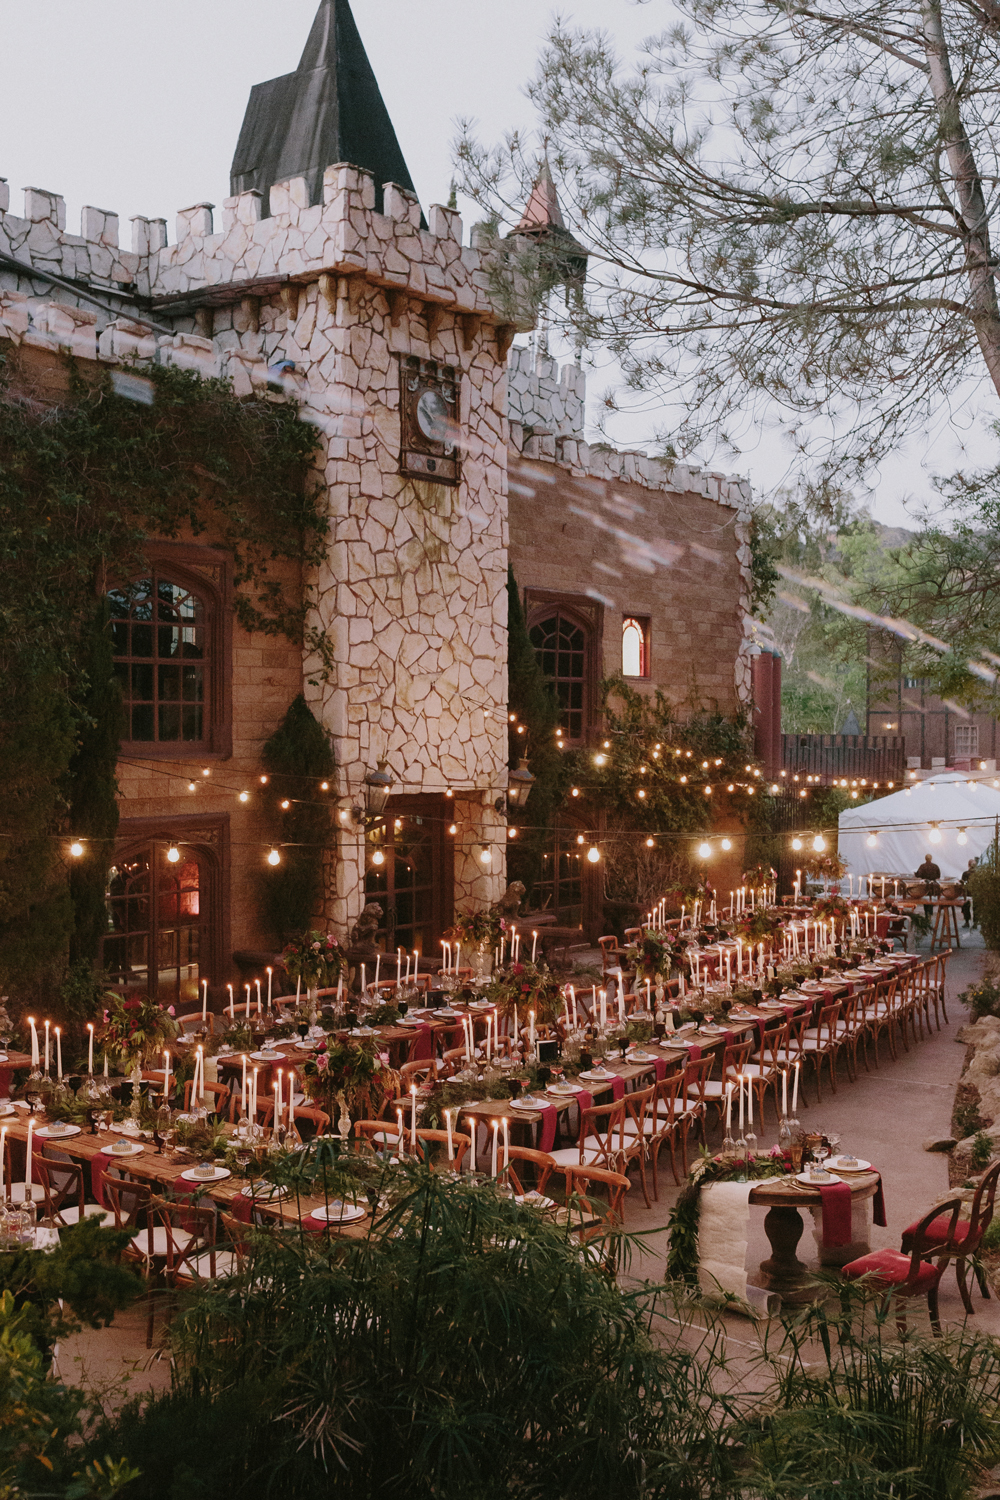 Hogwarts inspired wedding venue and decor